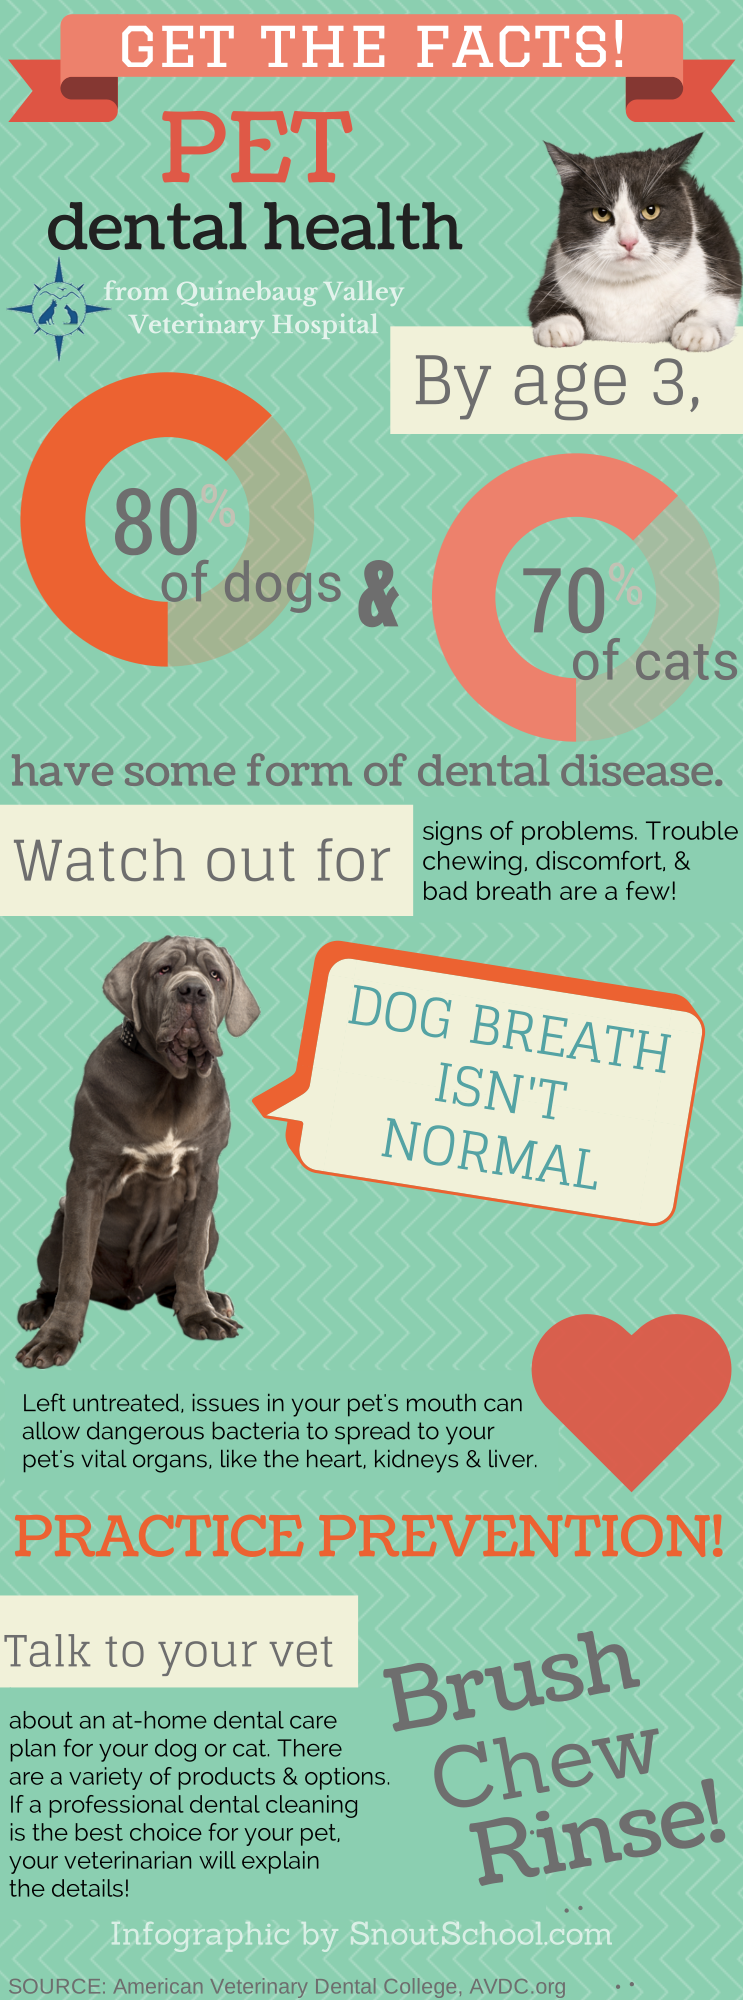 It's pet dental health month. Any veterinary or vet tech